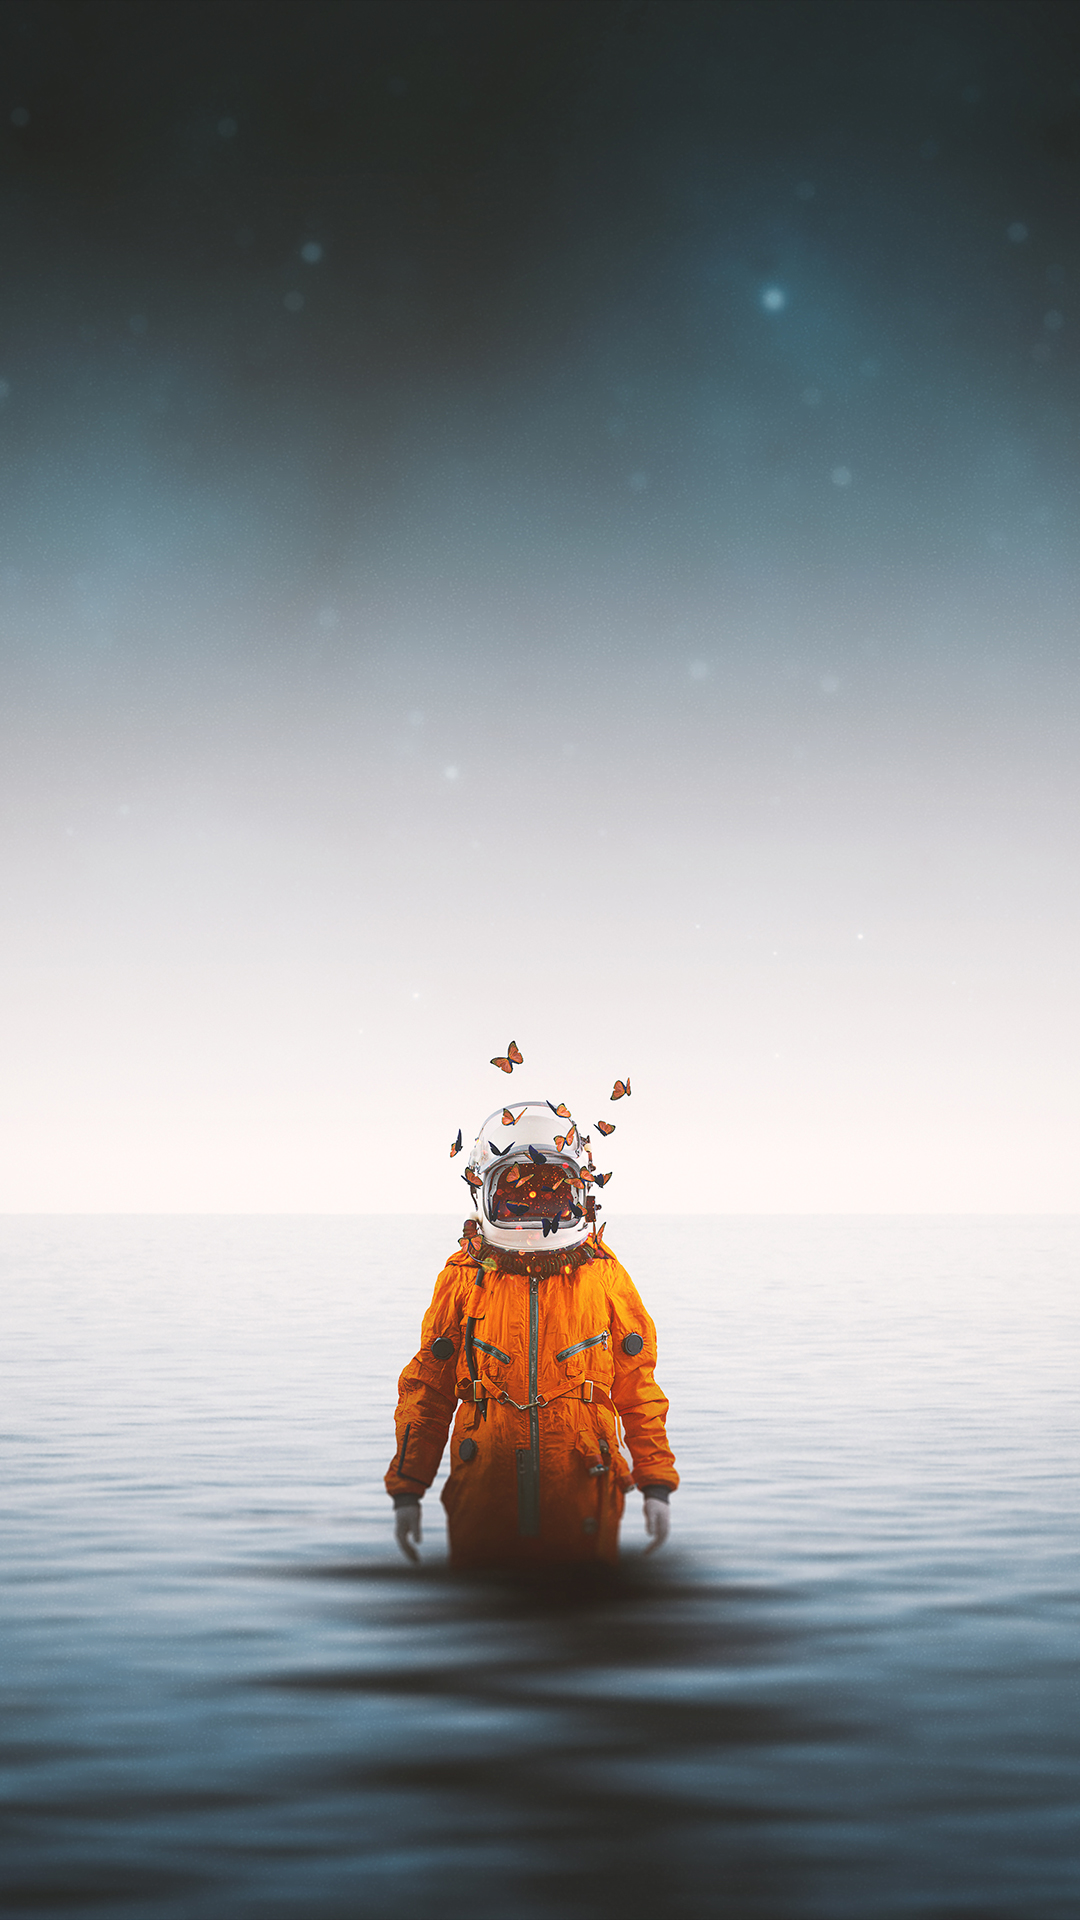 iPhone wallpaper abstract portrait astronaut macinmac